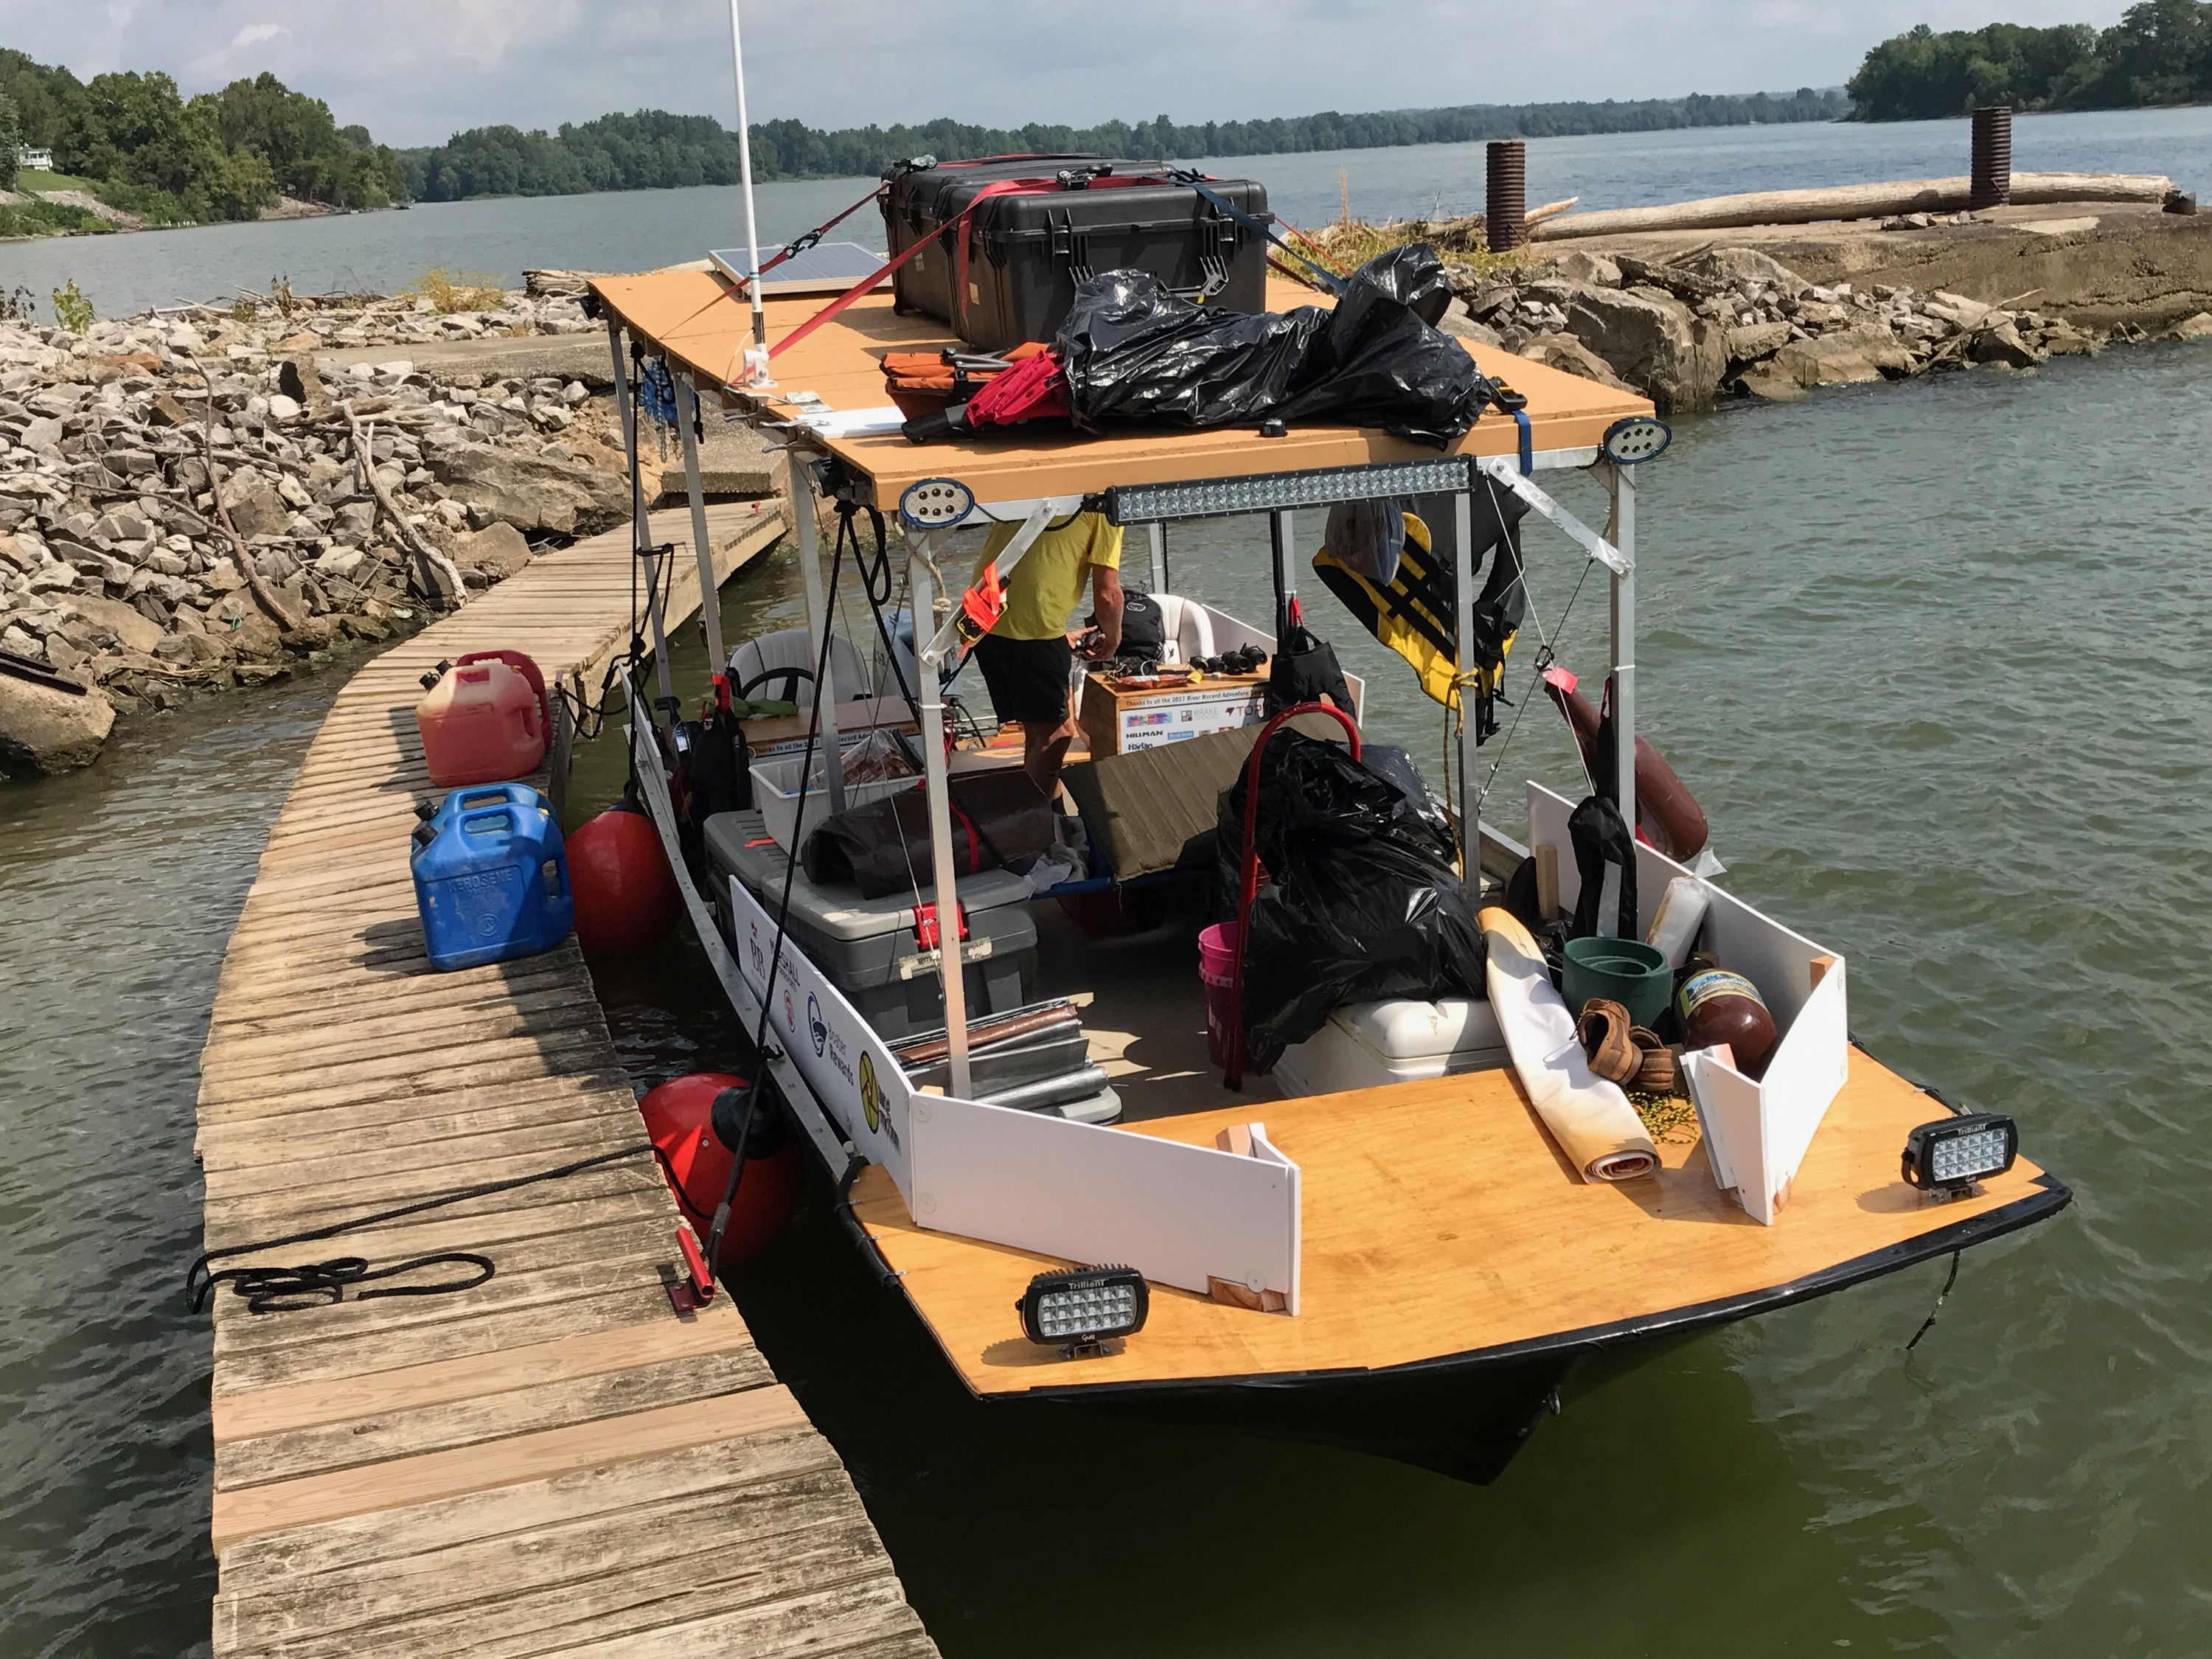 River Record Adventure Jon Boat docked at Derby Landing in Indiana